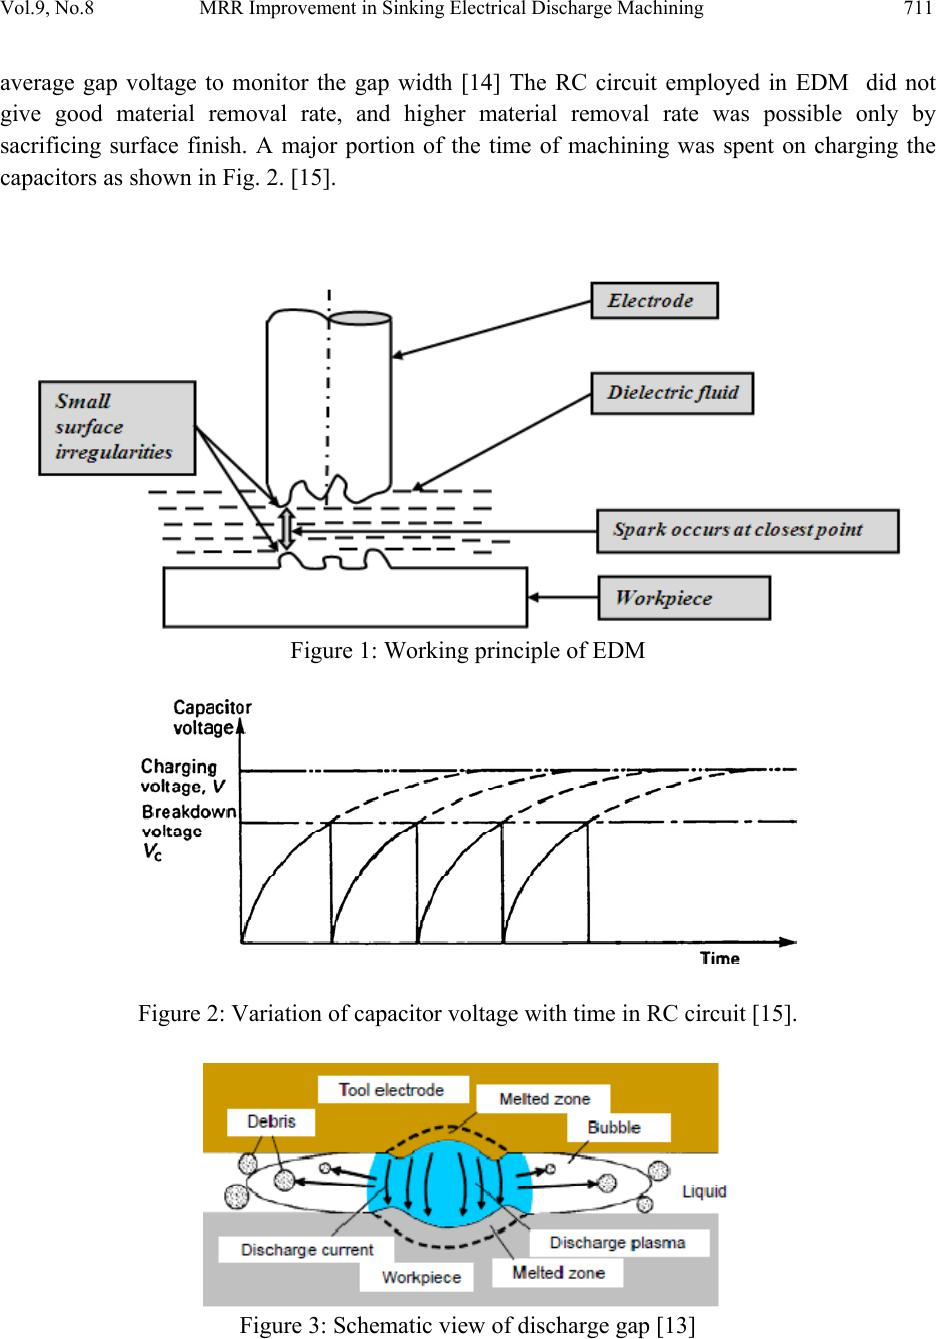 MRR Improvement in Sinking Electrical Discharge Machining: A